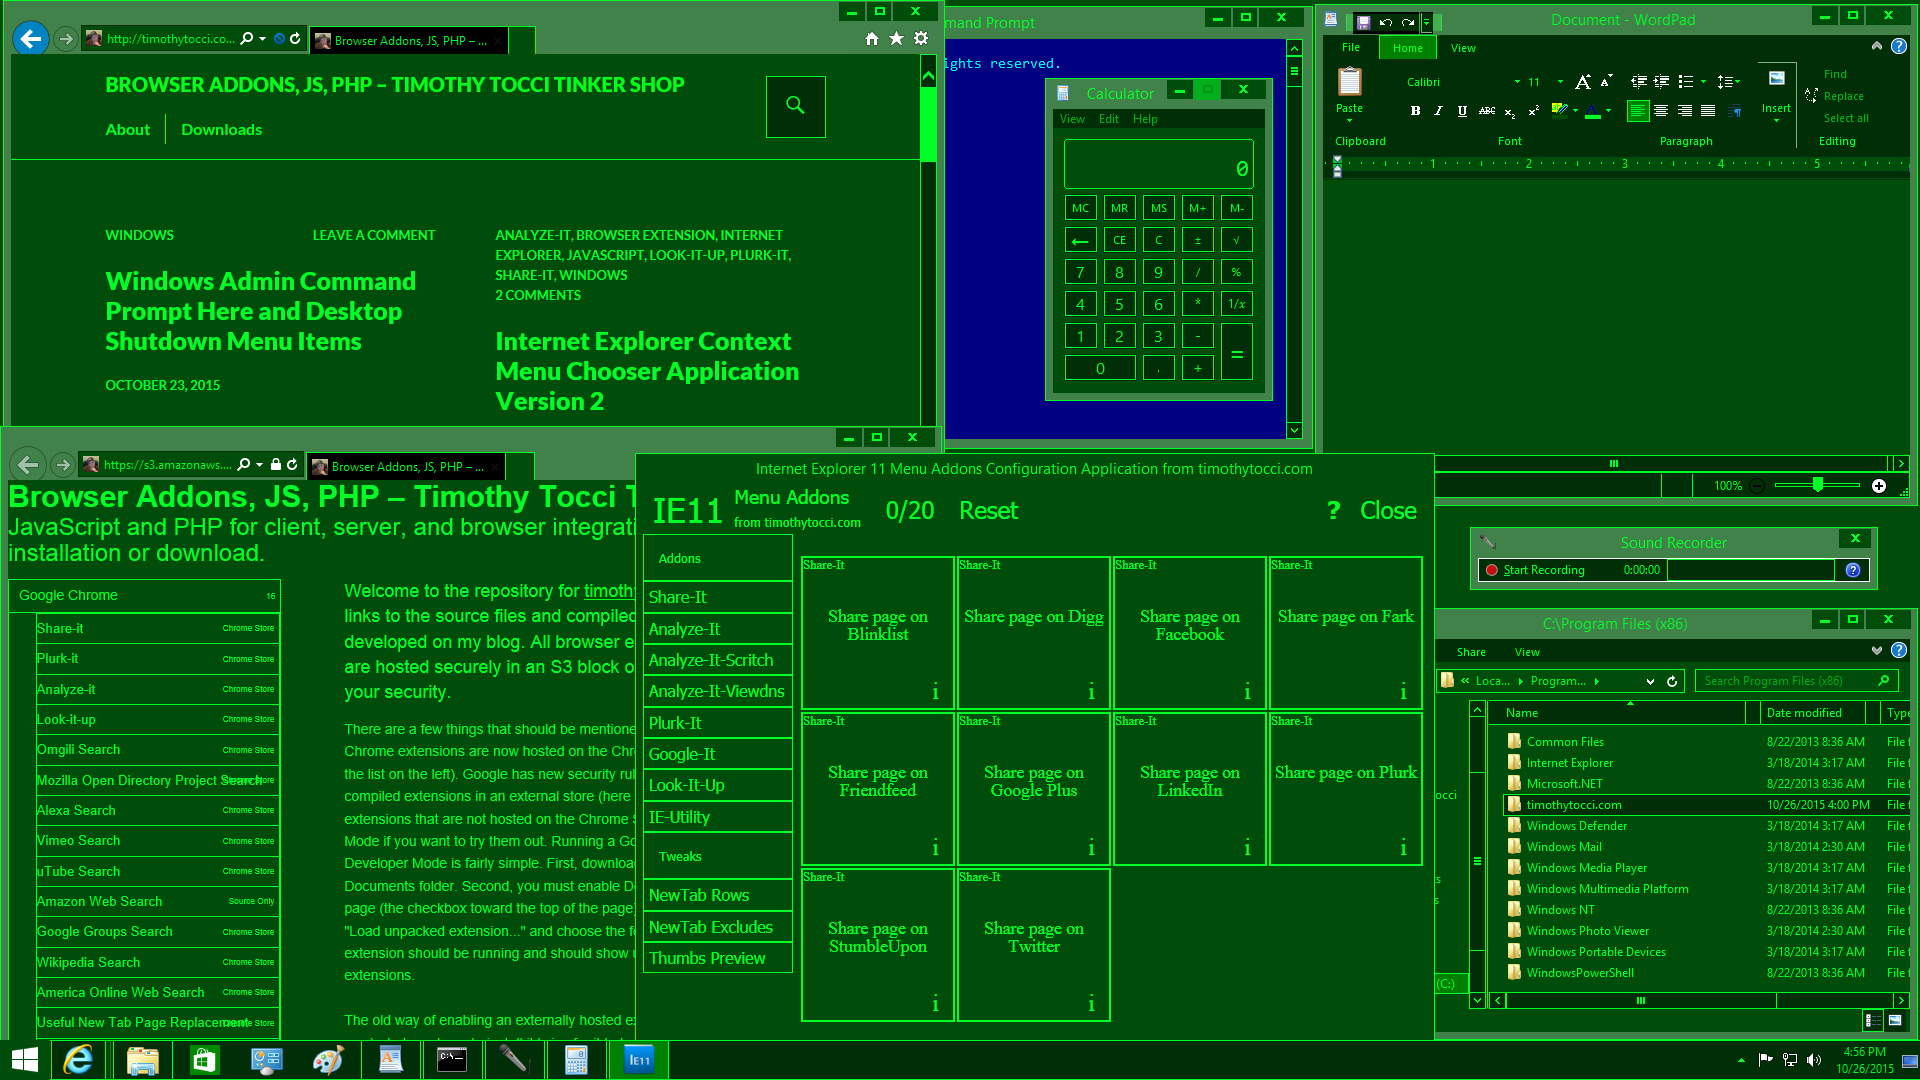 Windows 8 Desktop Apps